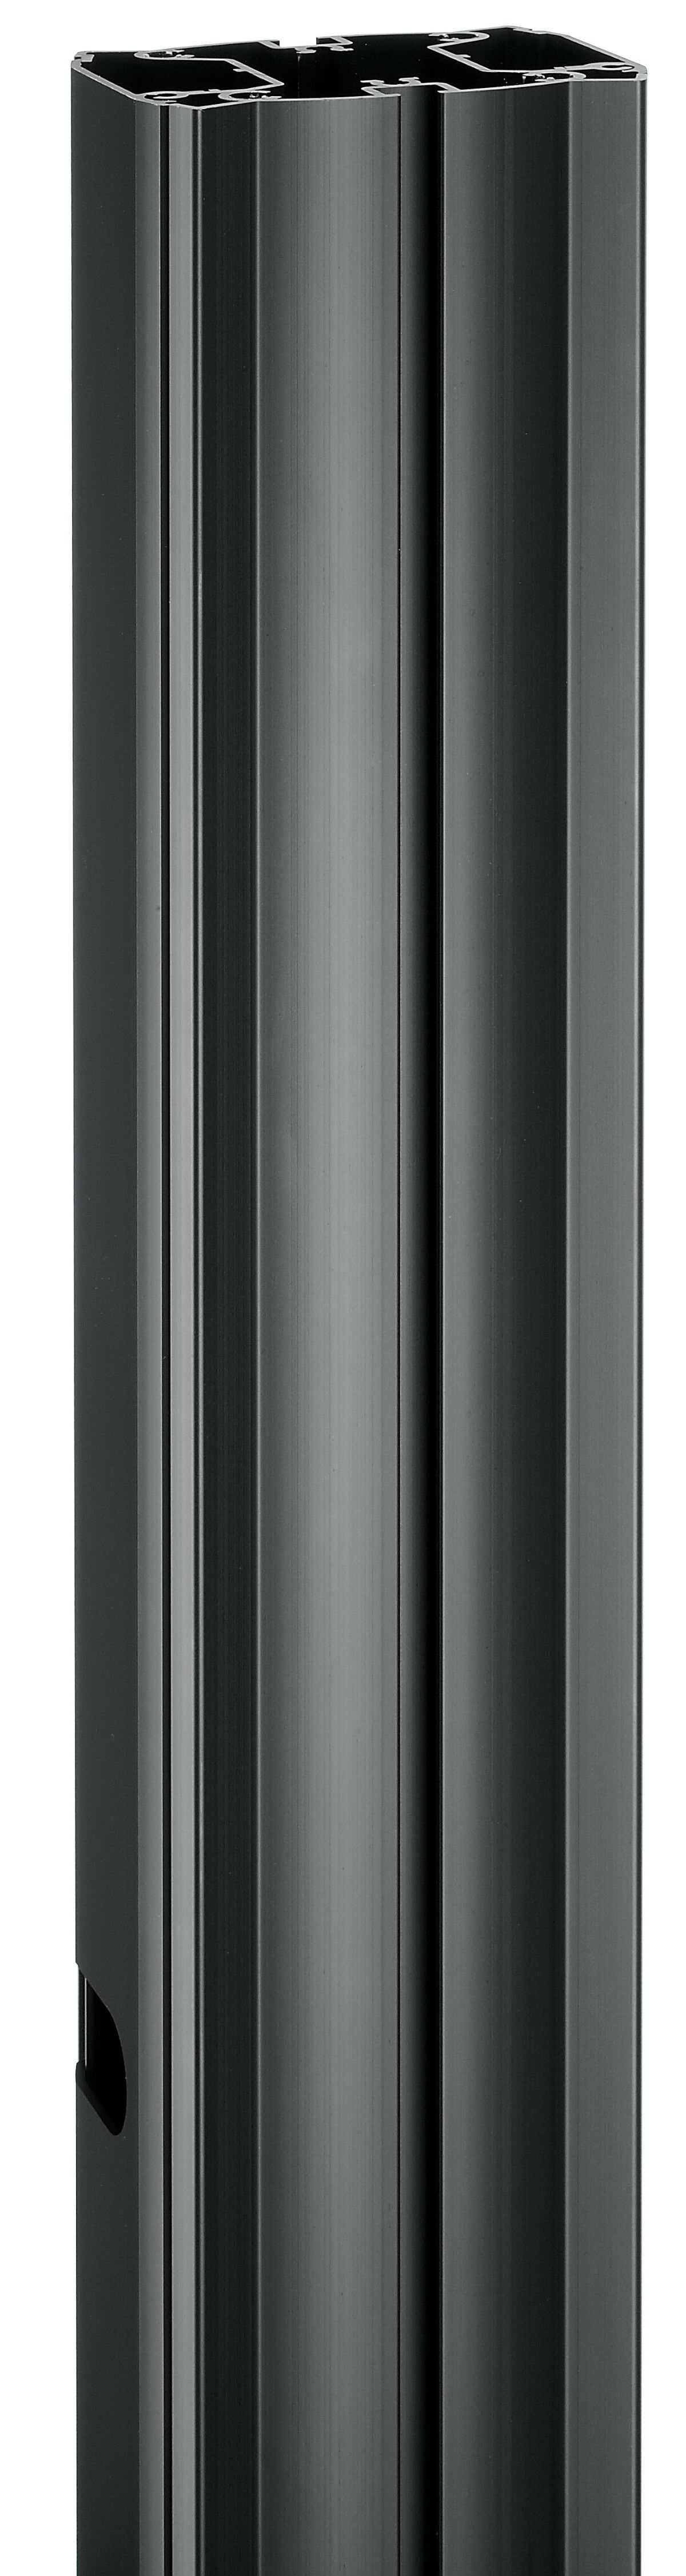 Vogel's PUC 2720 Pole black - Product